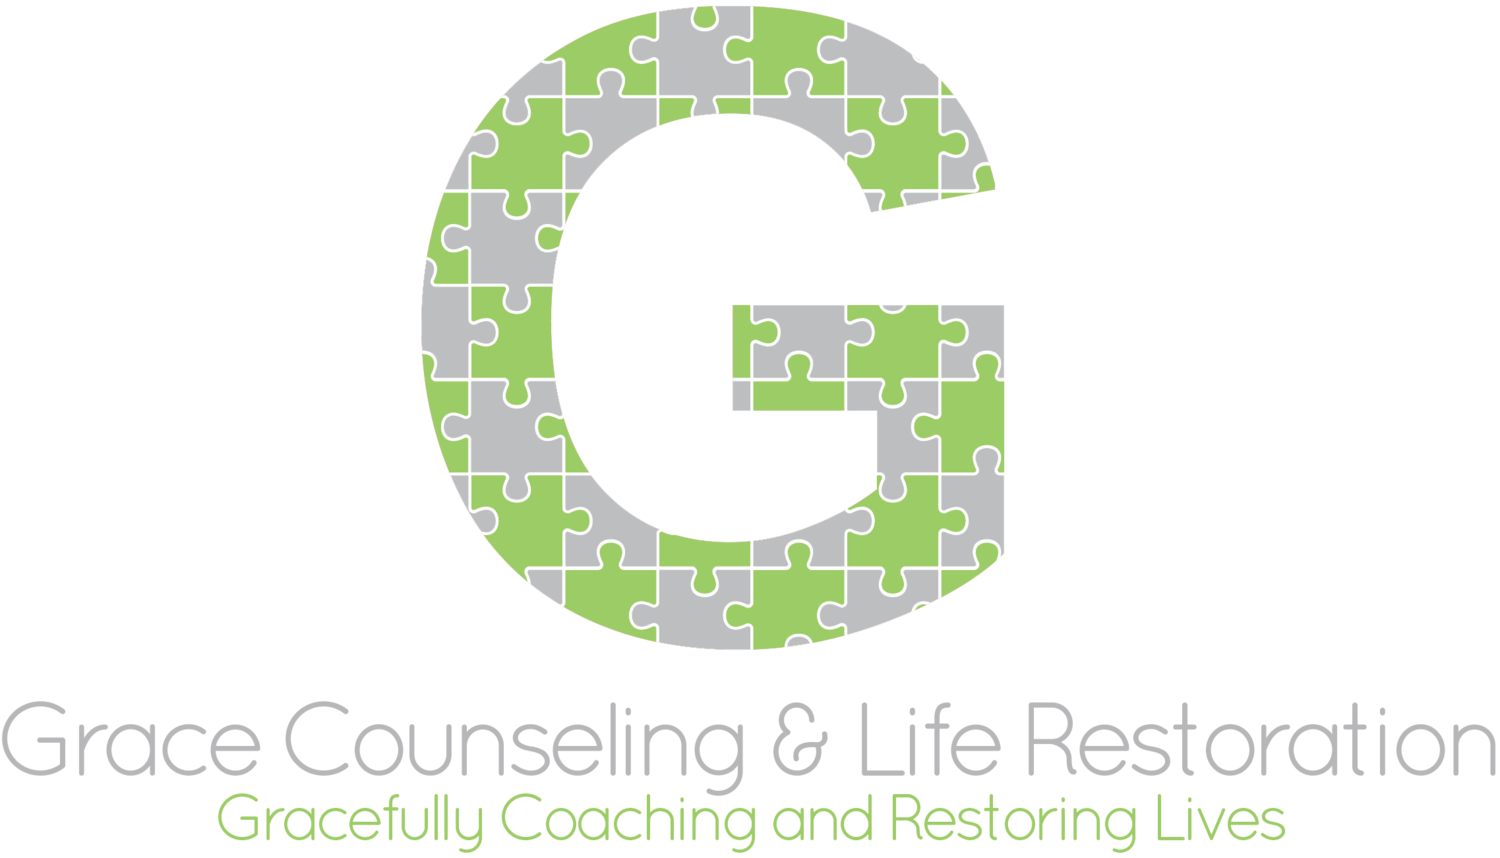 Grace Counseling & Life Restoration